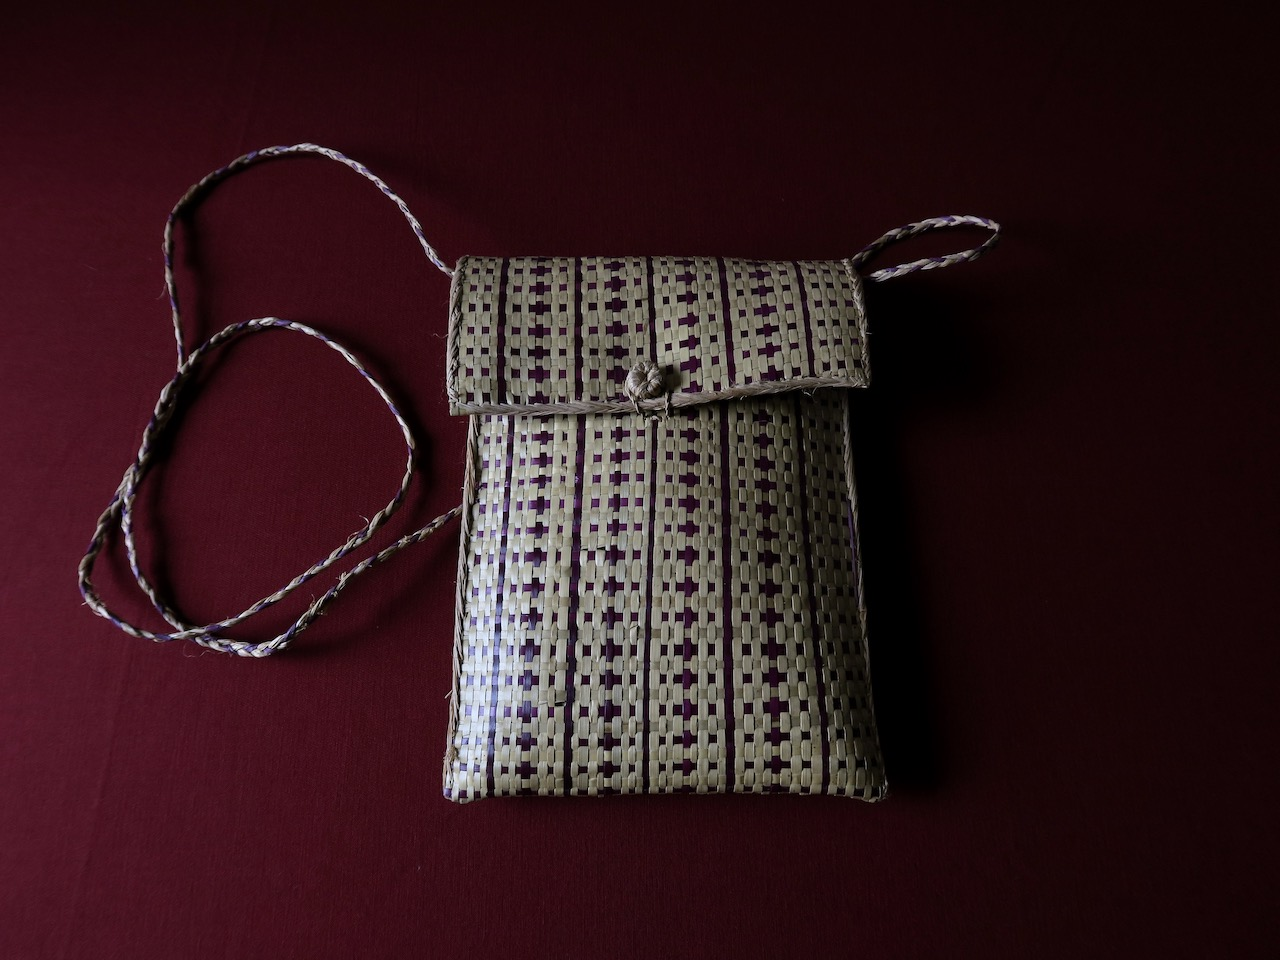 Small wicker bag from Madagscar